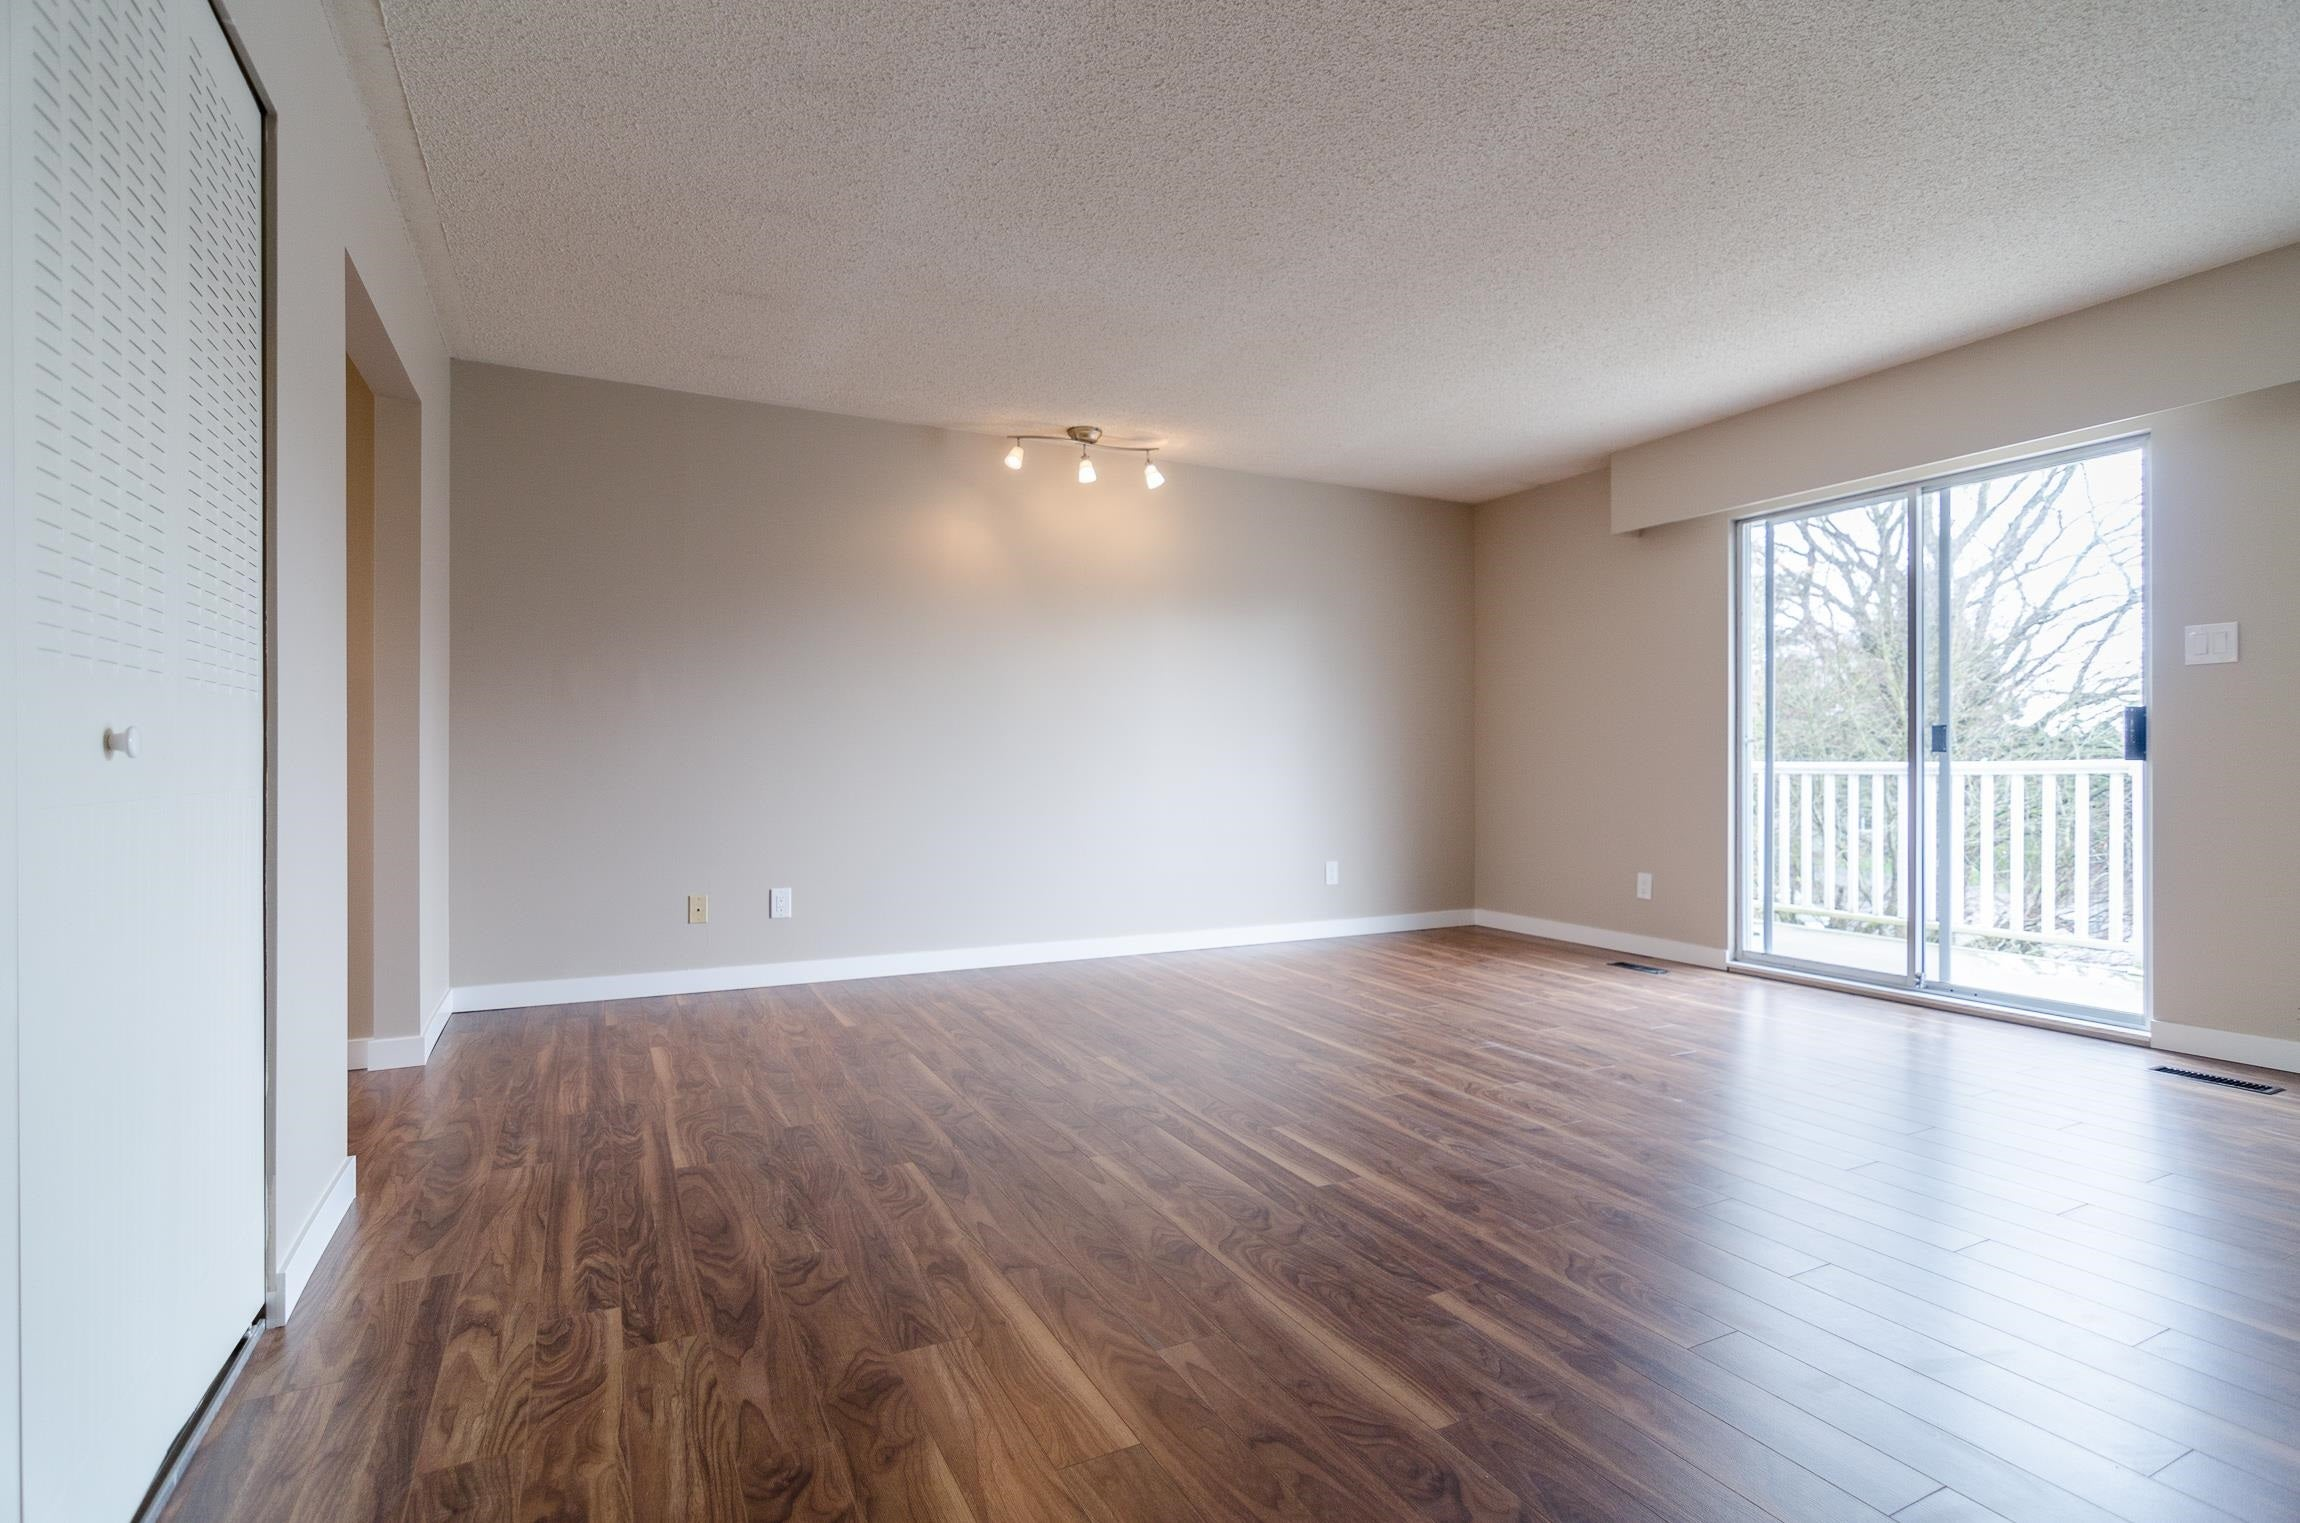 7831 MALAHAT AVENUE - Broadmoor House/Single Family for sale, 4 Bedrooms (R2625745) - #14